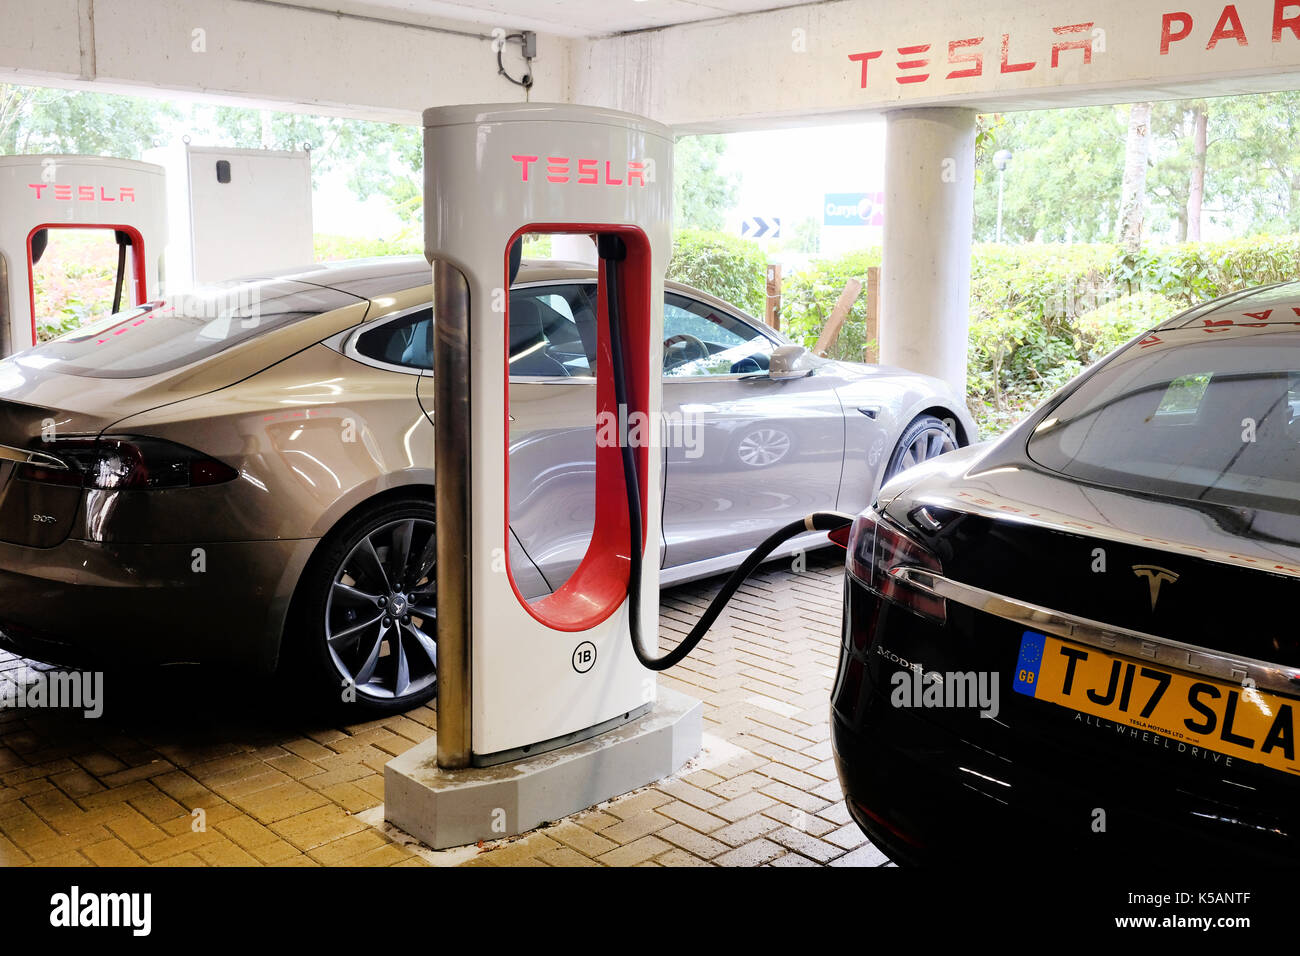 A tesla electric car being recharged at a clearly marked tesla charging station - Stock Image